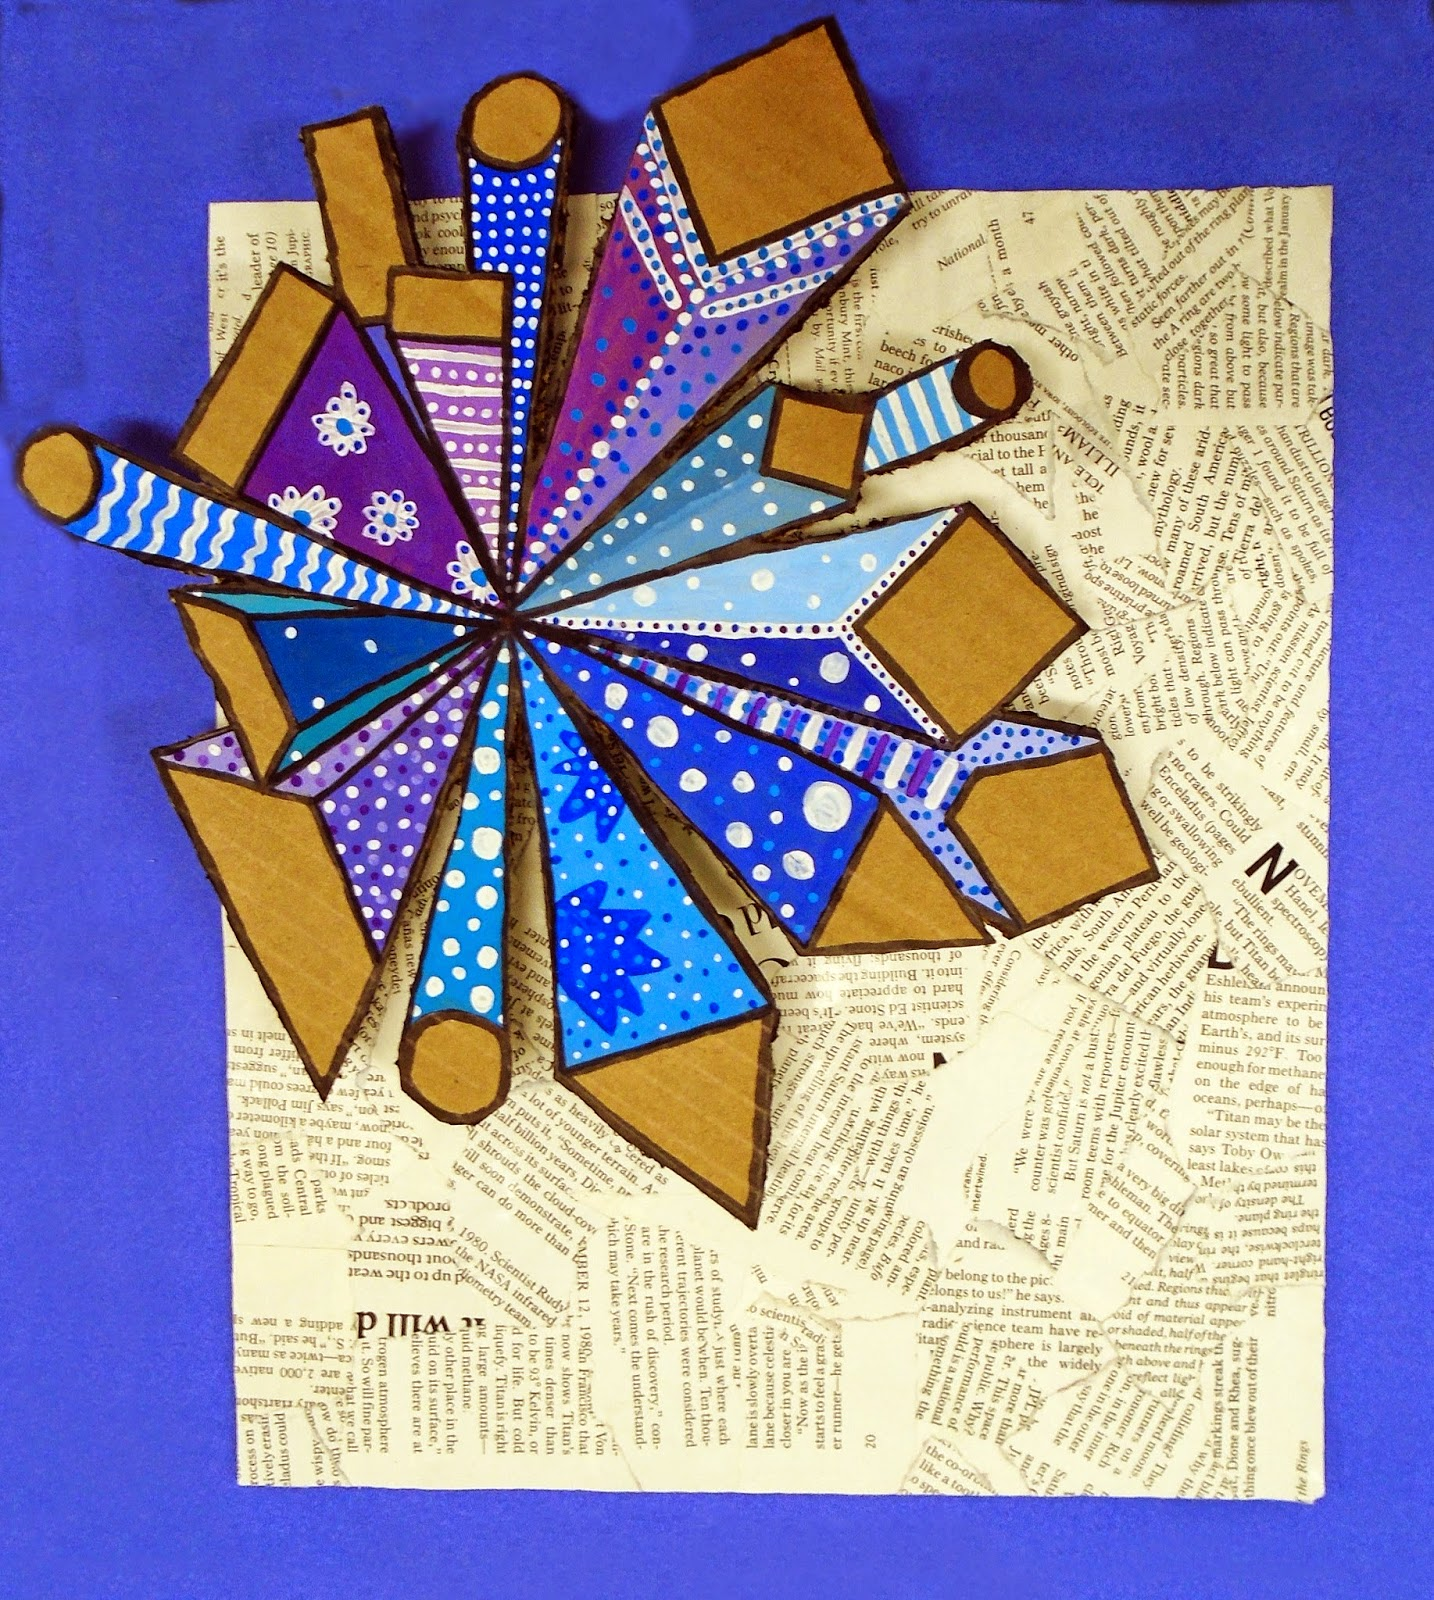 Artimus Prime 8th Linear Perspective Mixed Media Collage